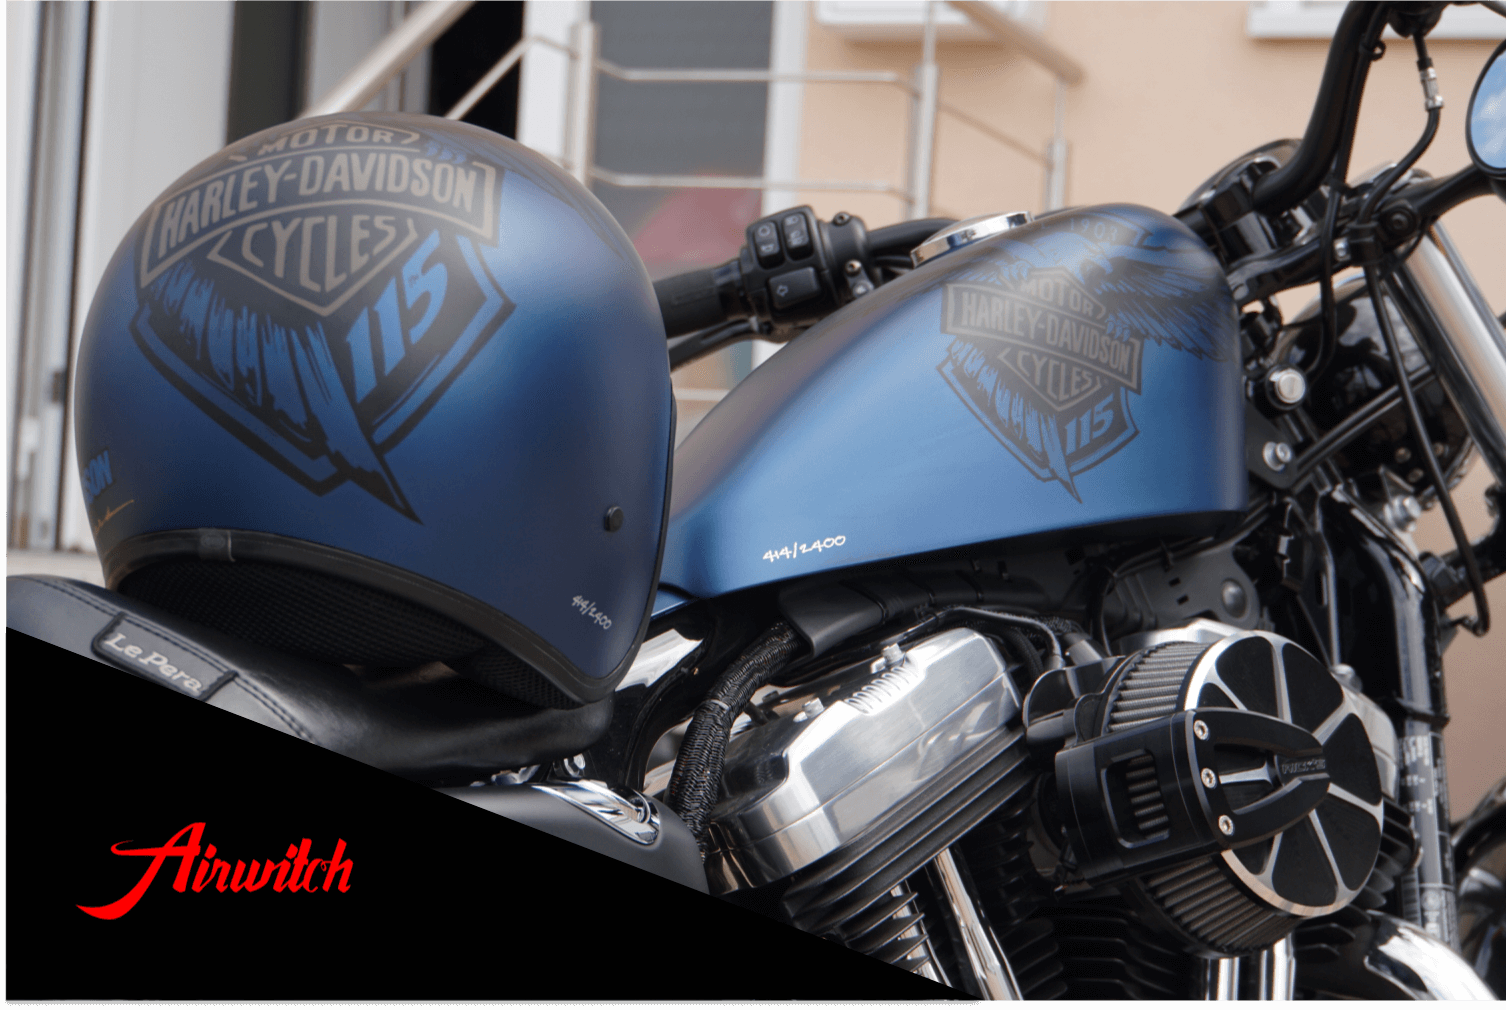 Sportster Forty Eight eagle 115 anniversary Harley Davidson blue - Originallackierung